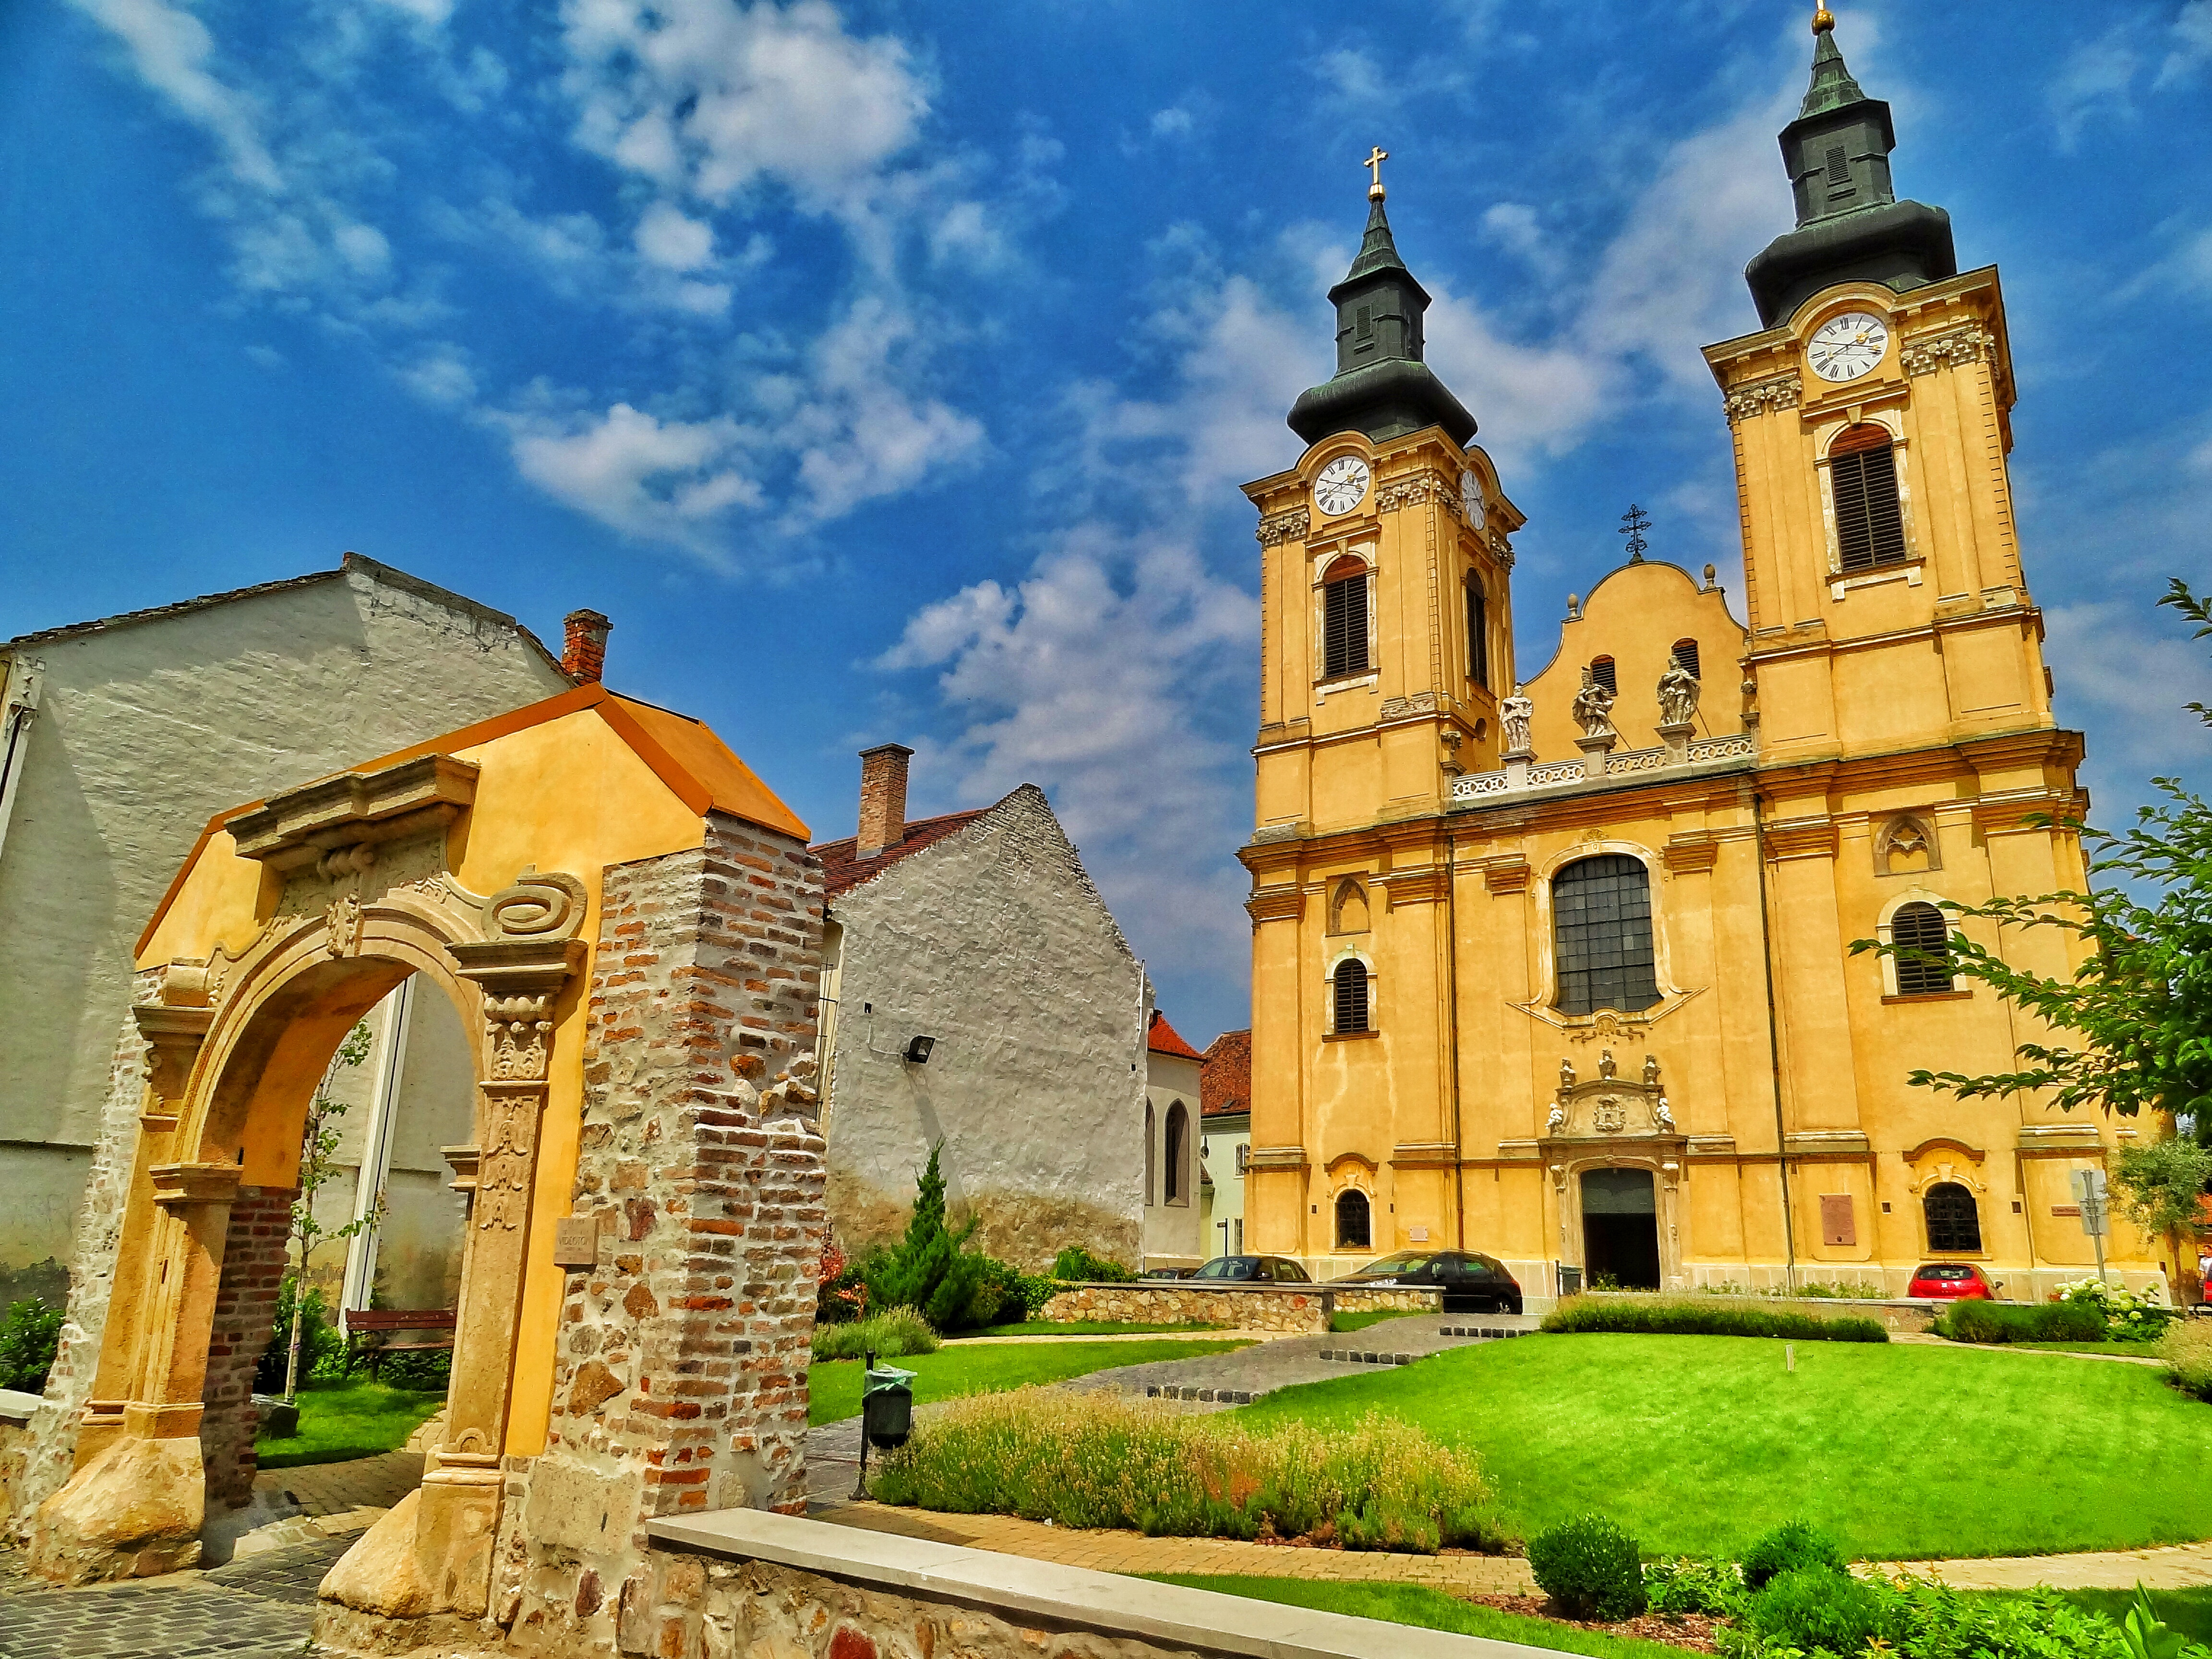 szekesfehervar single guys It is better to consume foods and beverages that enhance good health rather than those which impair it it is better to be physically fit than out of shape.